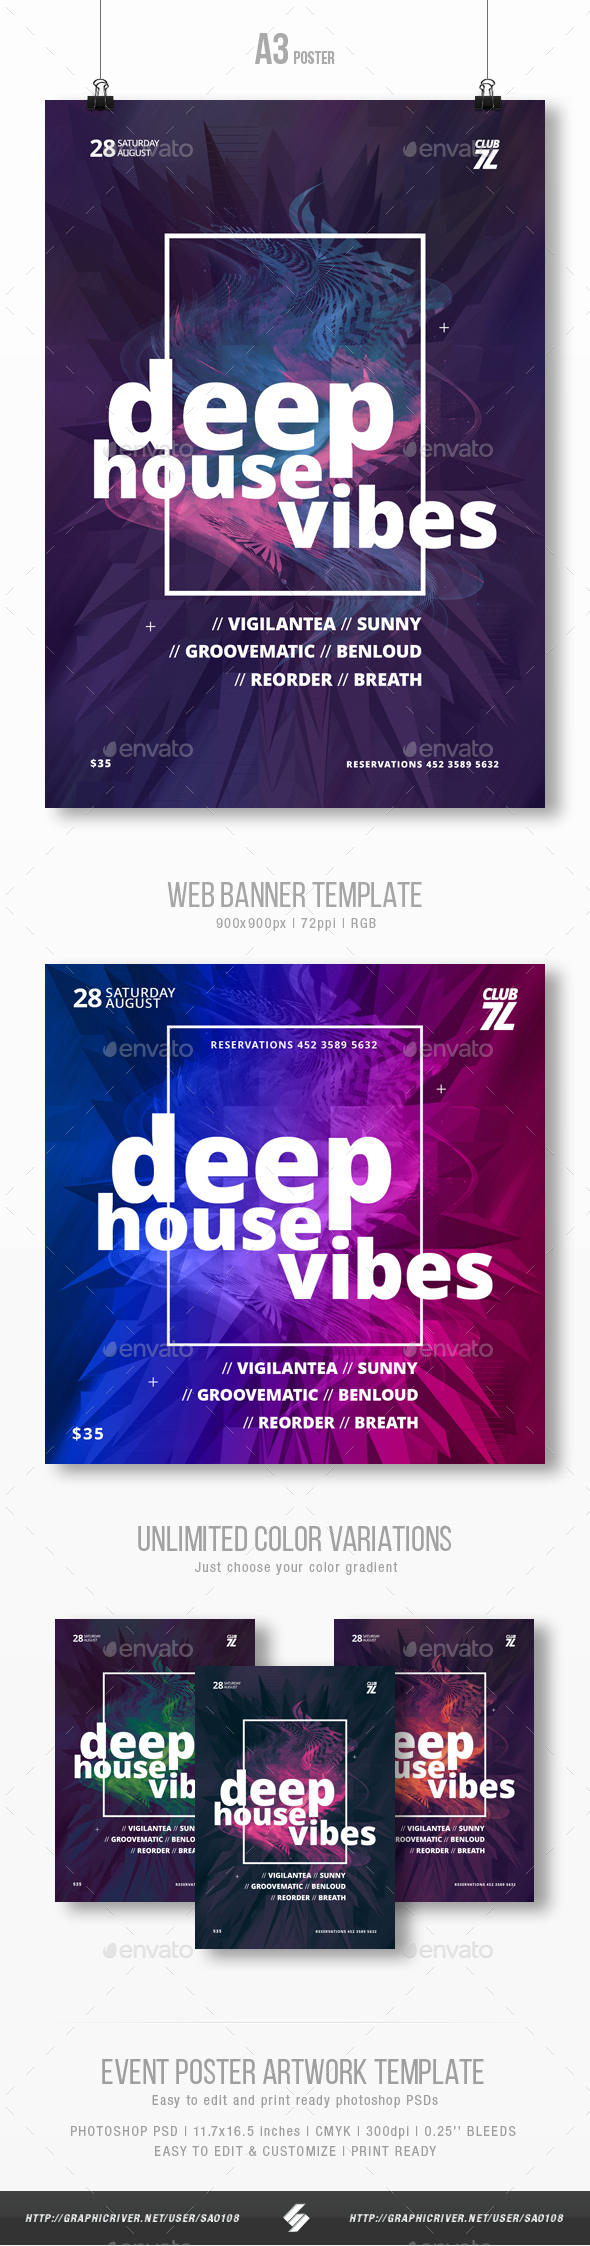 Deep House Vibes - Party Flyer / Poster Template A3 - Clubs & Parties Events